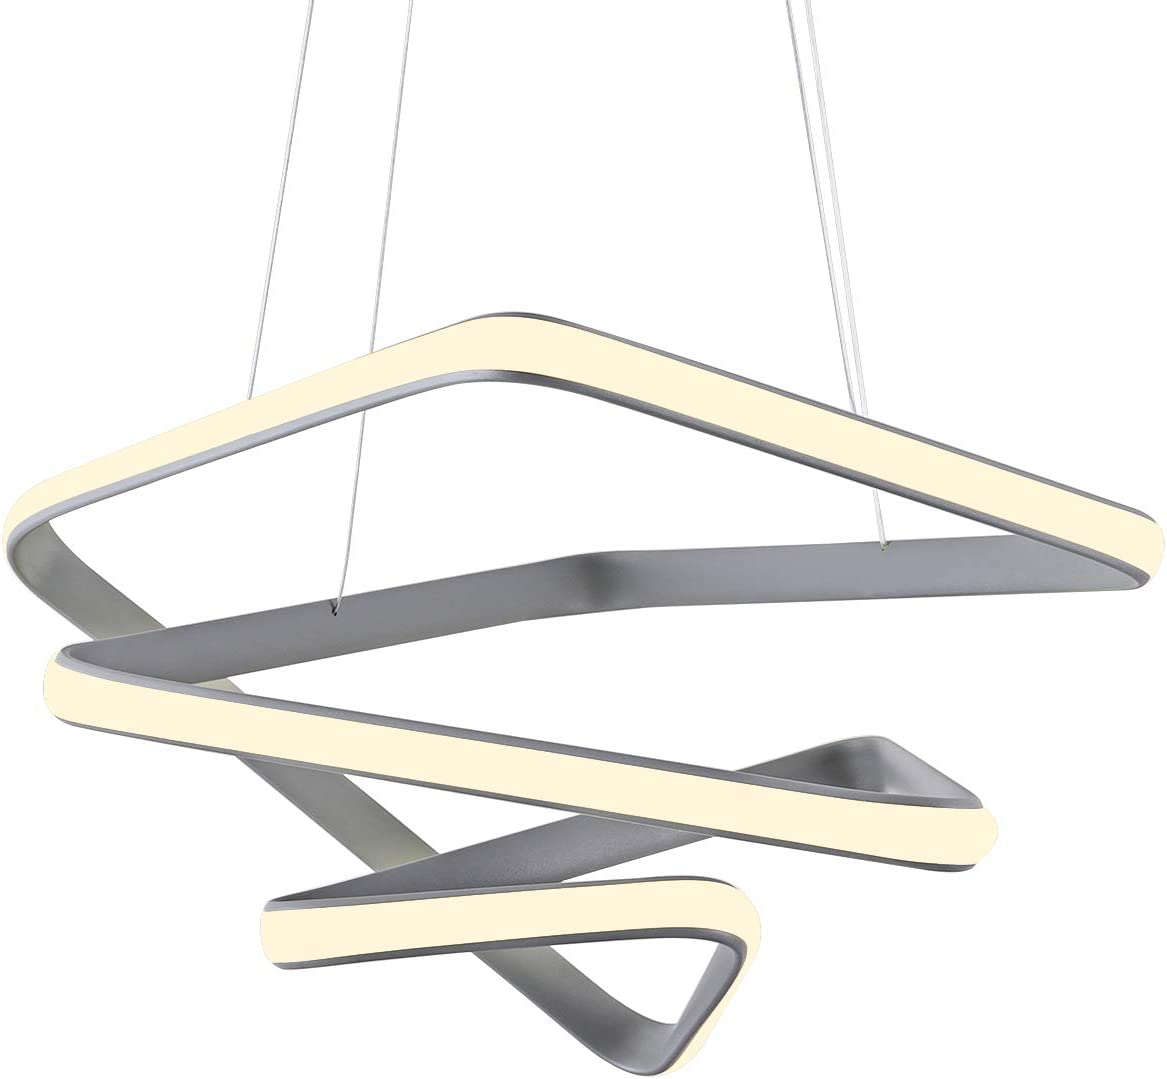 Modern LED Pendant Light for Kitchen Island Creative Foyer Hanging Light Fixture with Acrylic Shape Dimmable Contemporary Geometric Chandelier 4000K for Living Room, Dining Room, Hallway, 36W, Grey